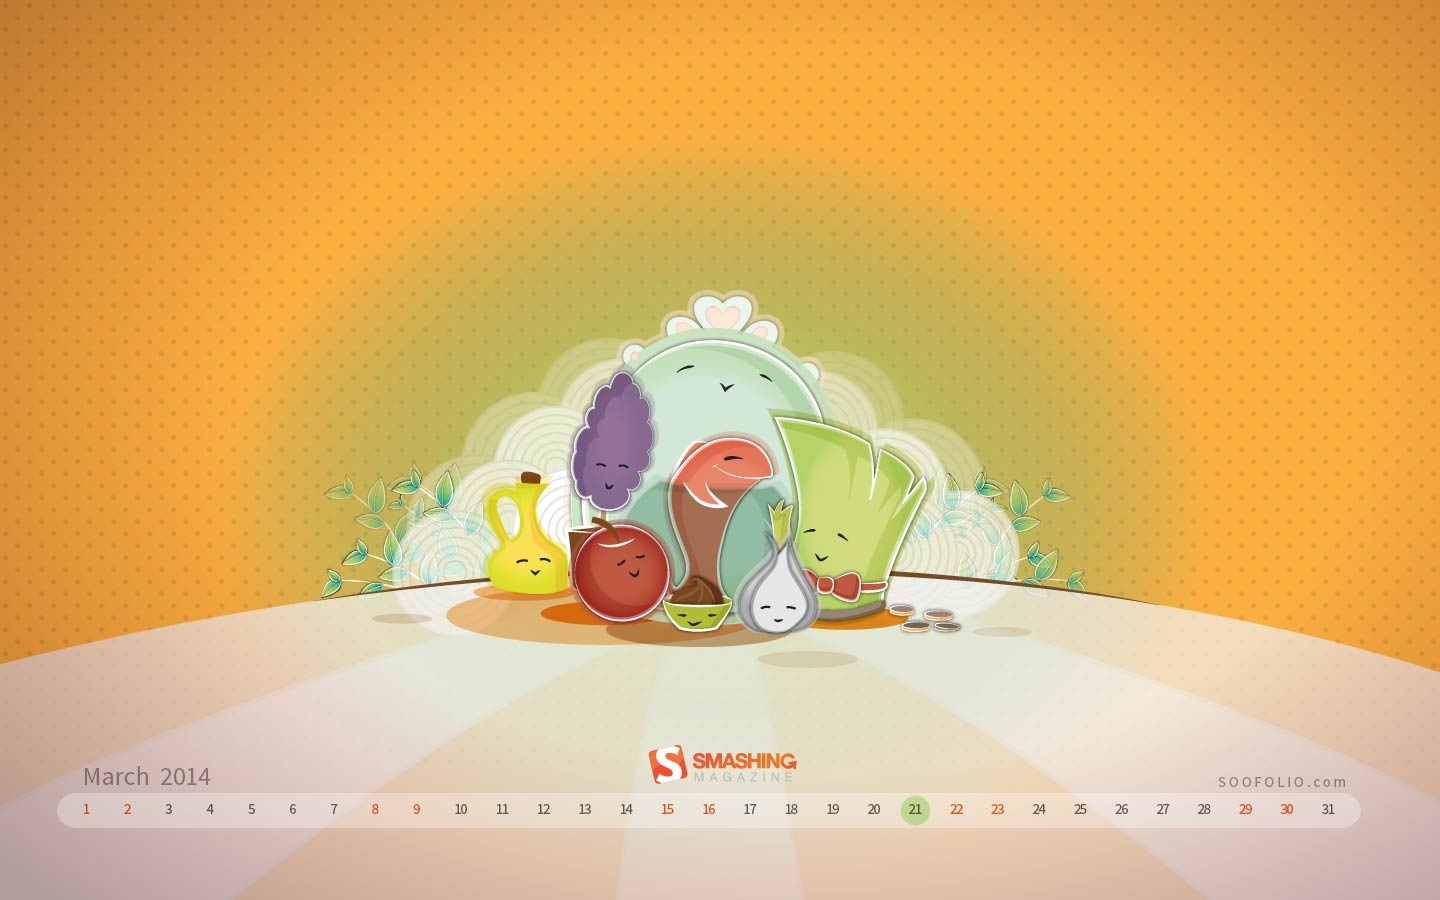 In January Calendar Wallpaper 50111